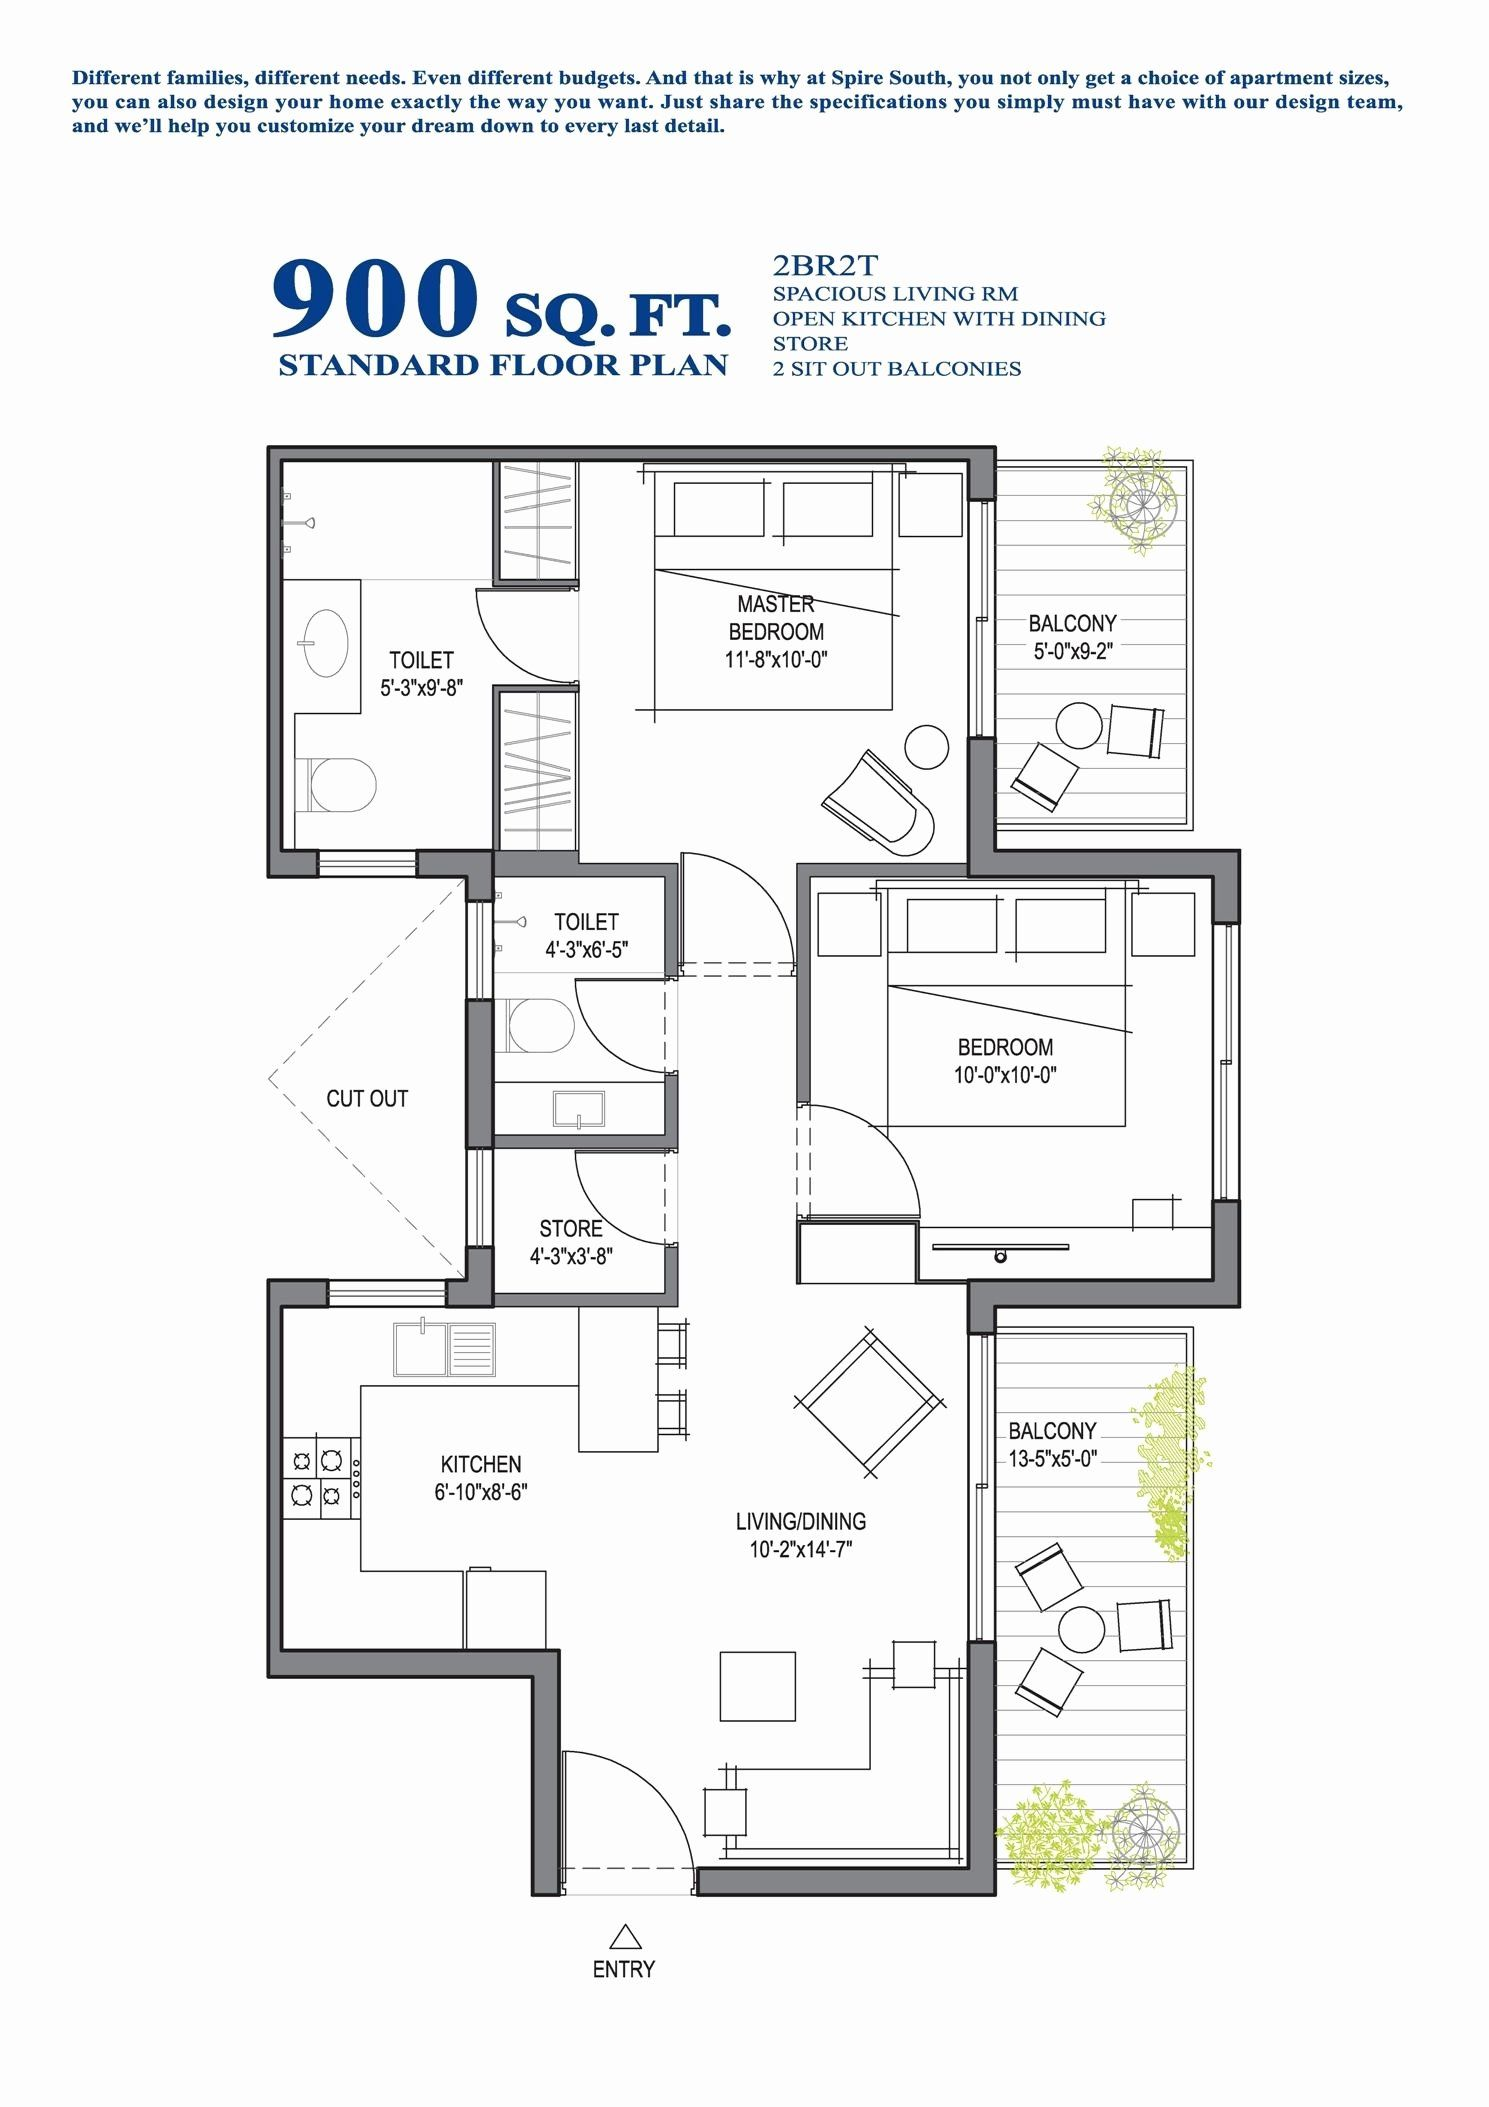 1000 Sq Foot House Plans Awesome Basement Floor Plans 1000 Sq Ft Duplex Floor Plans Small House Design Floor Plan Floor Plan Design